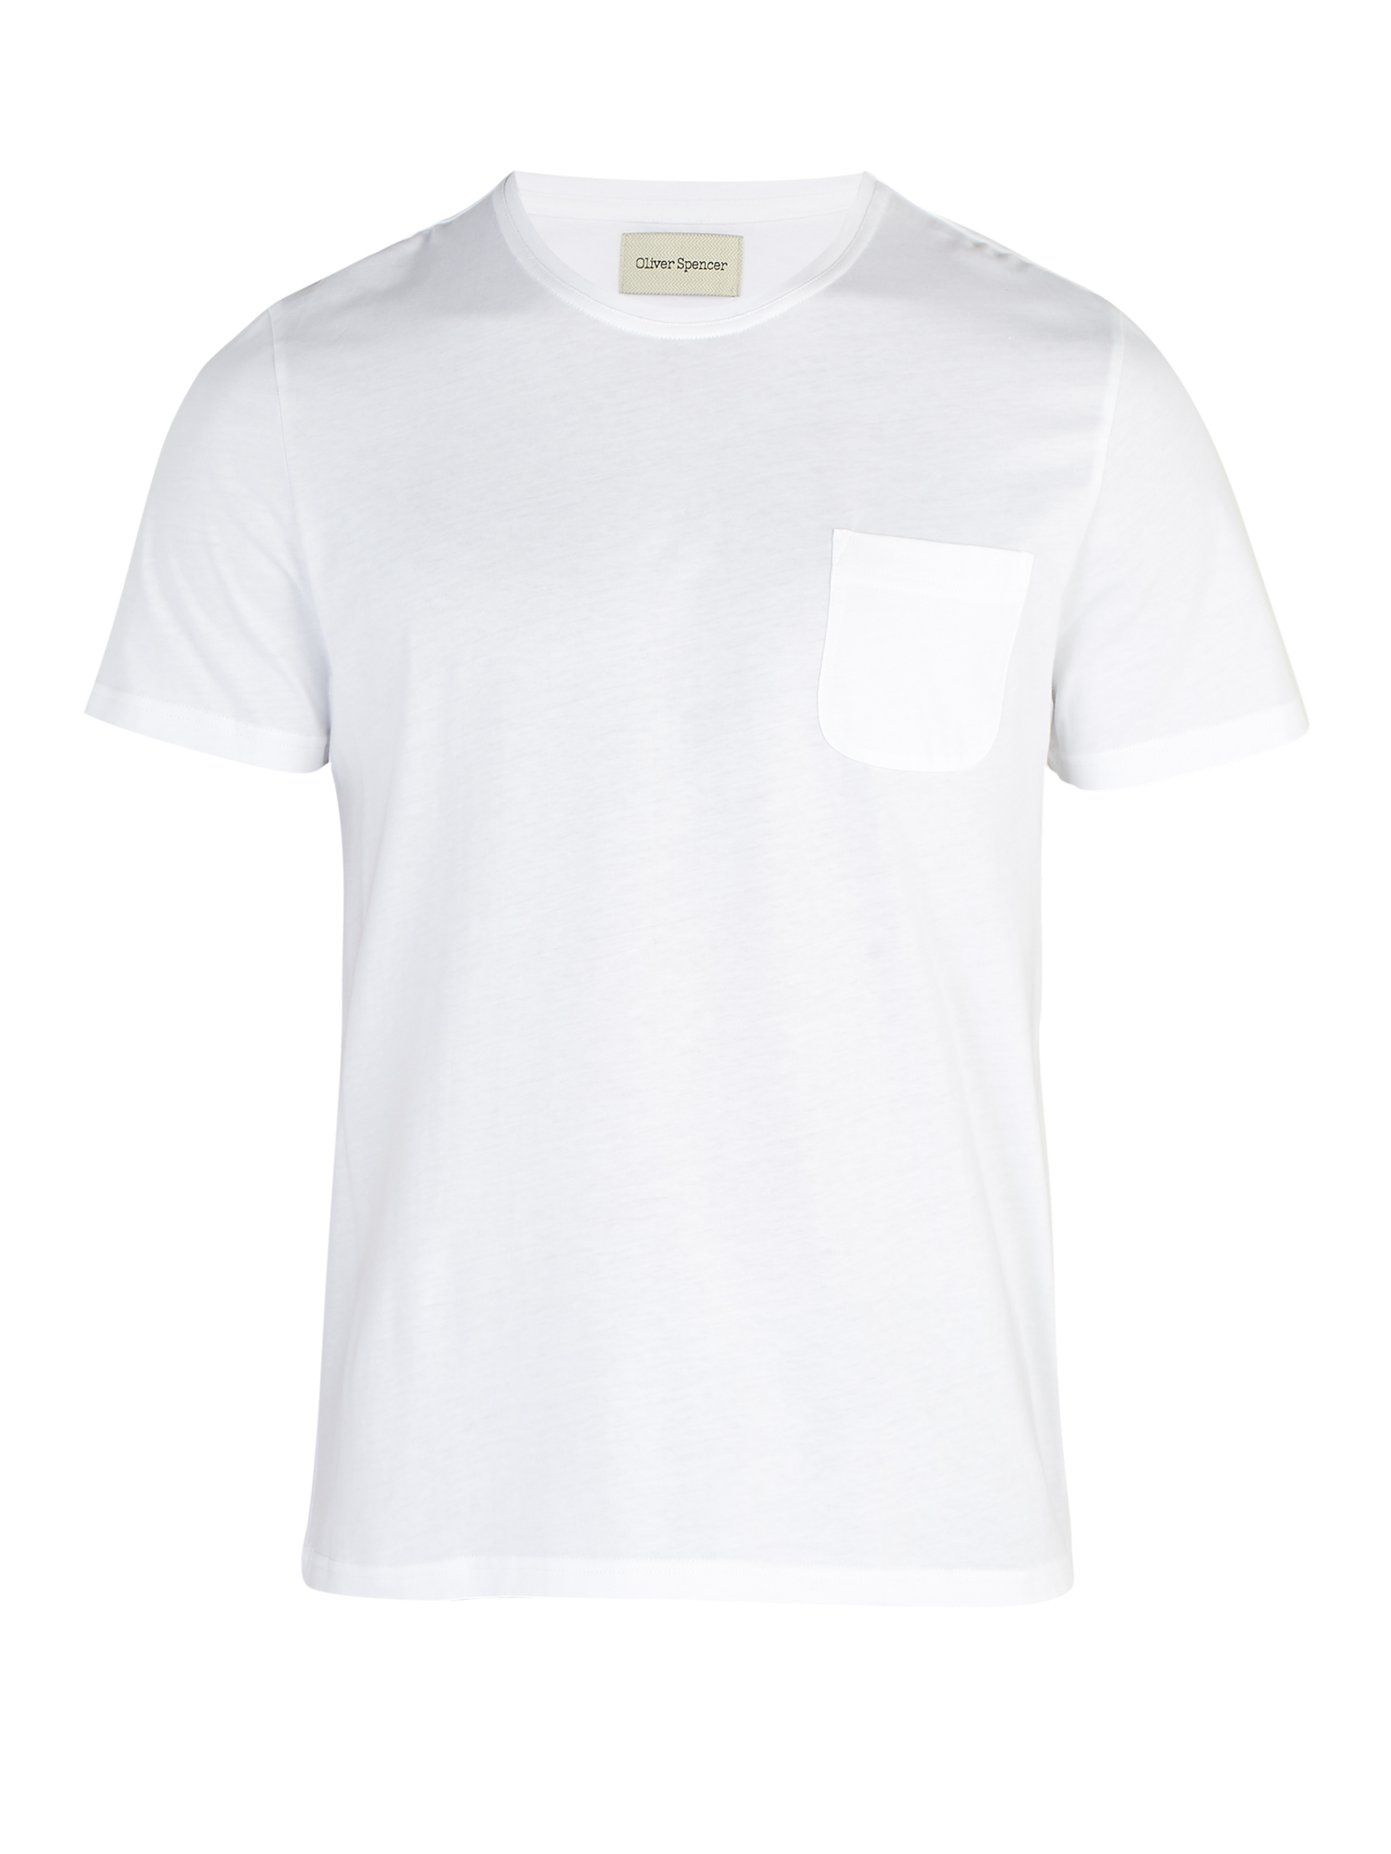 Oliver Spencer white t-shirt men